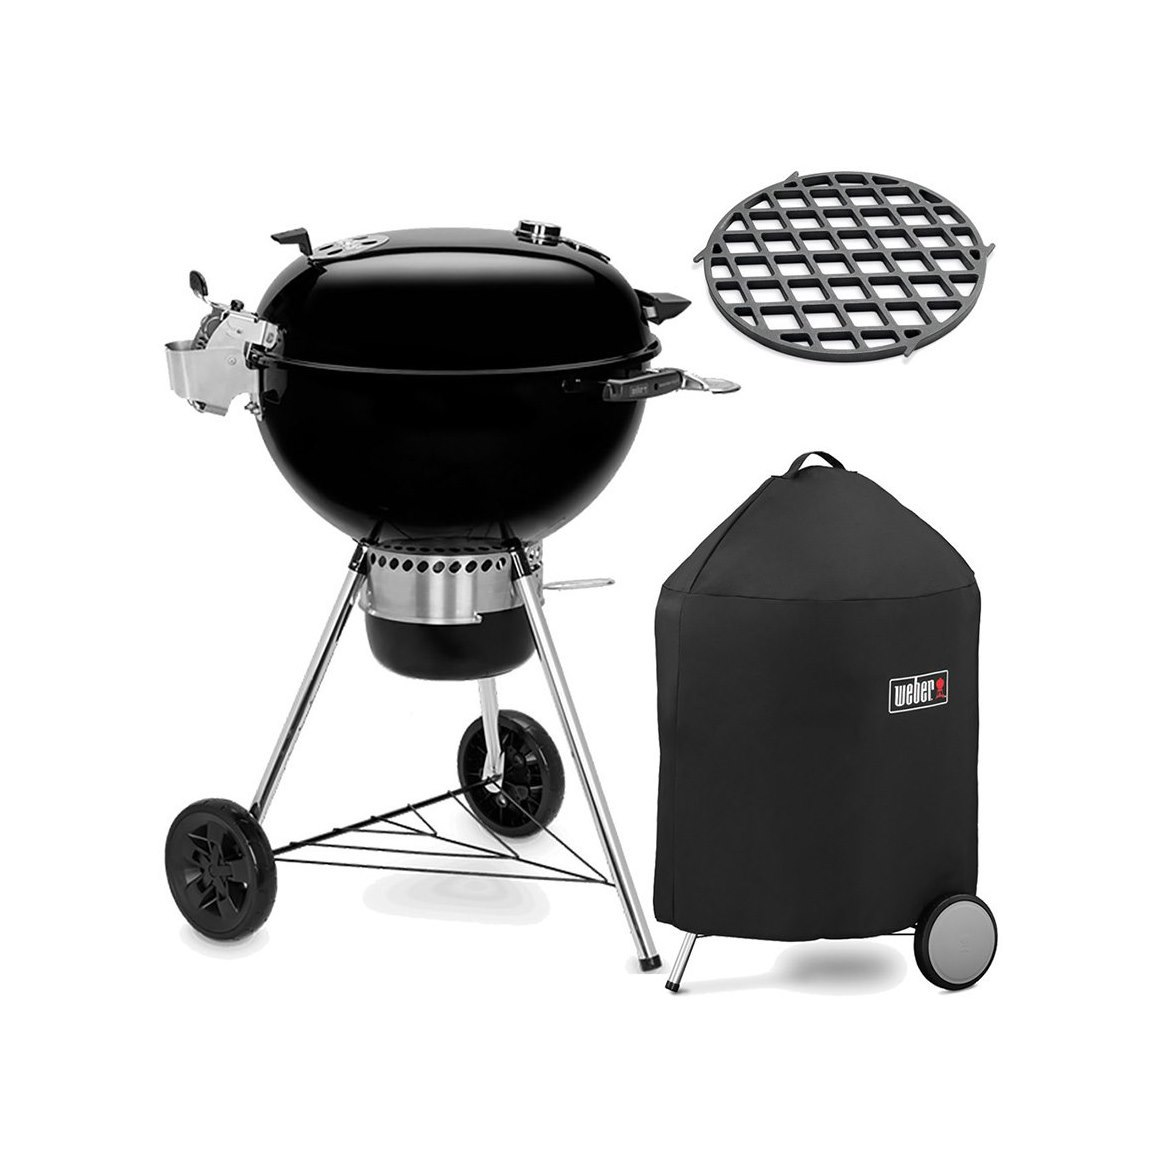 Weber Kettle Premium 57 Weber Master Touch Gbs Premium Se E 5775 Charcoal Grill 57cm